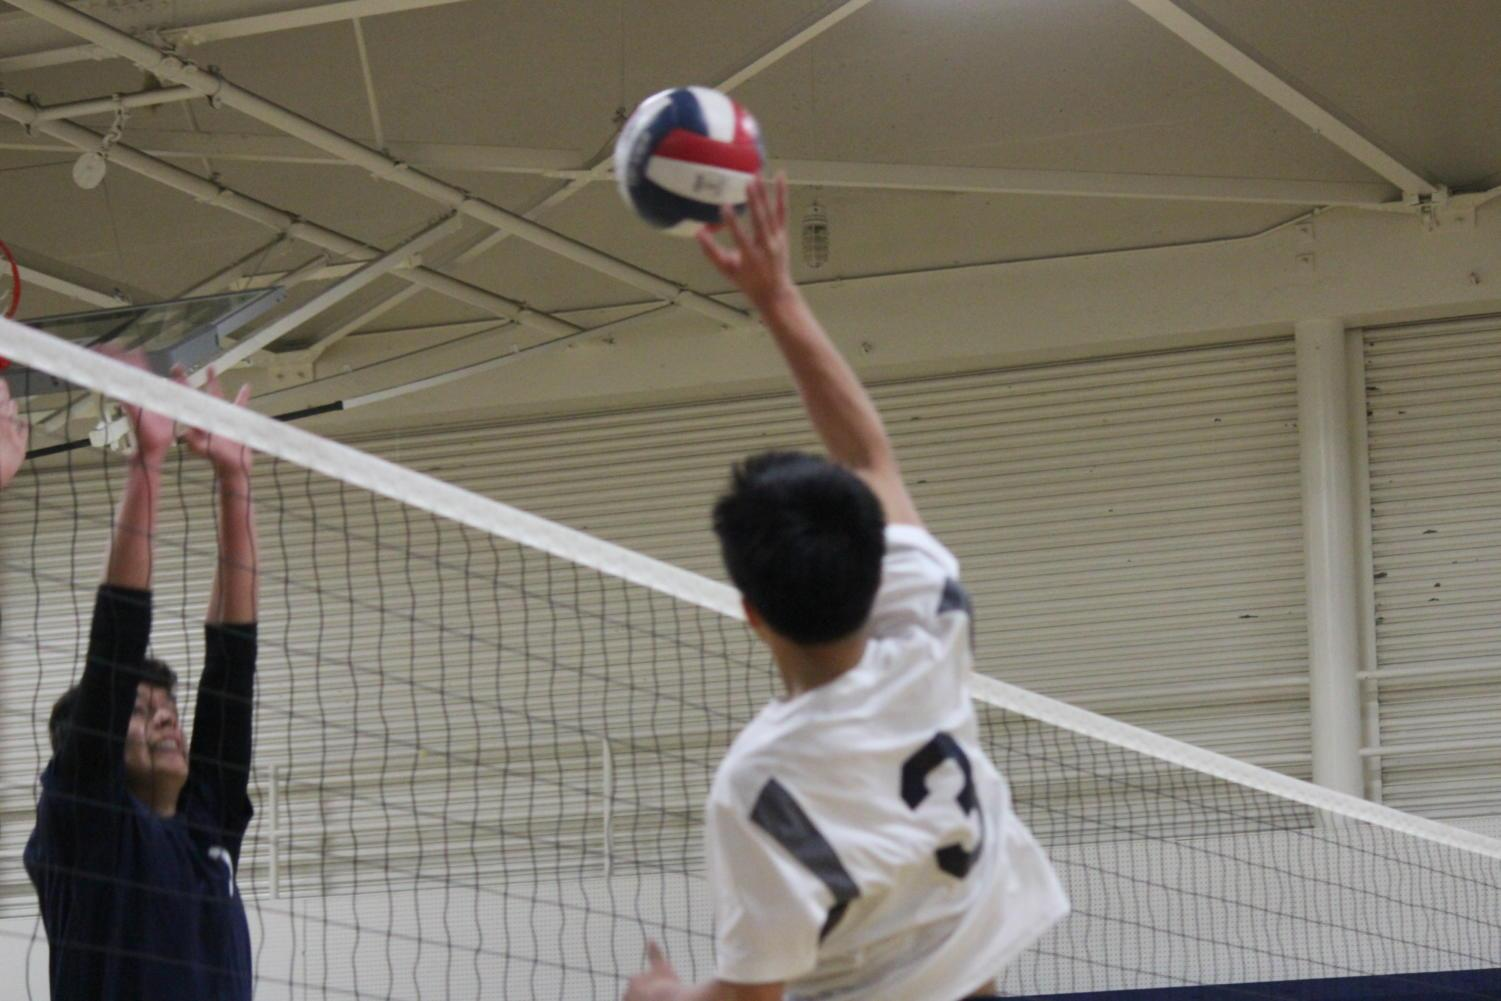 Freshman Justin Wong hits the ball over the net, getting past the Eagles blocker.